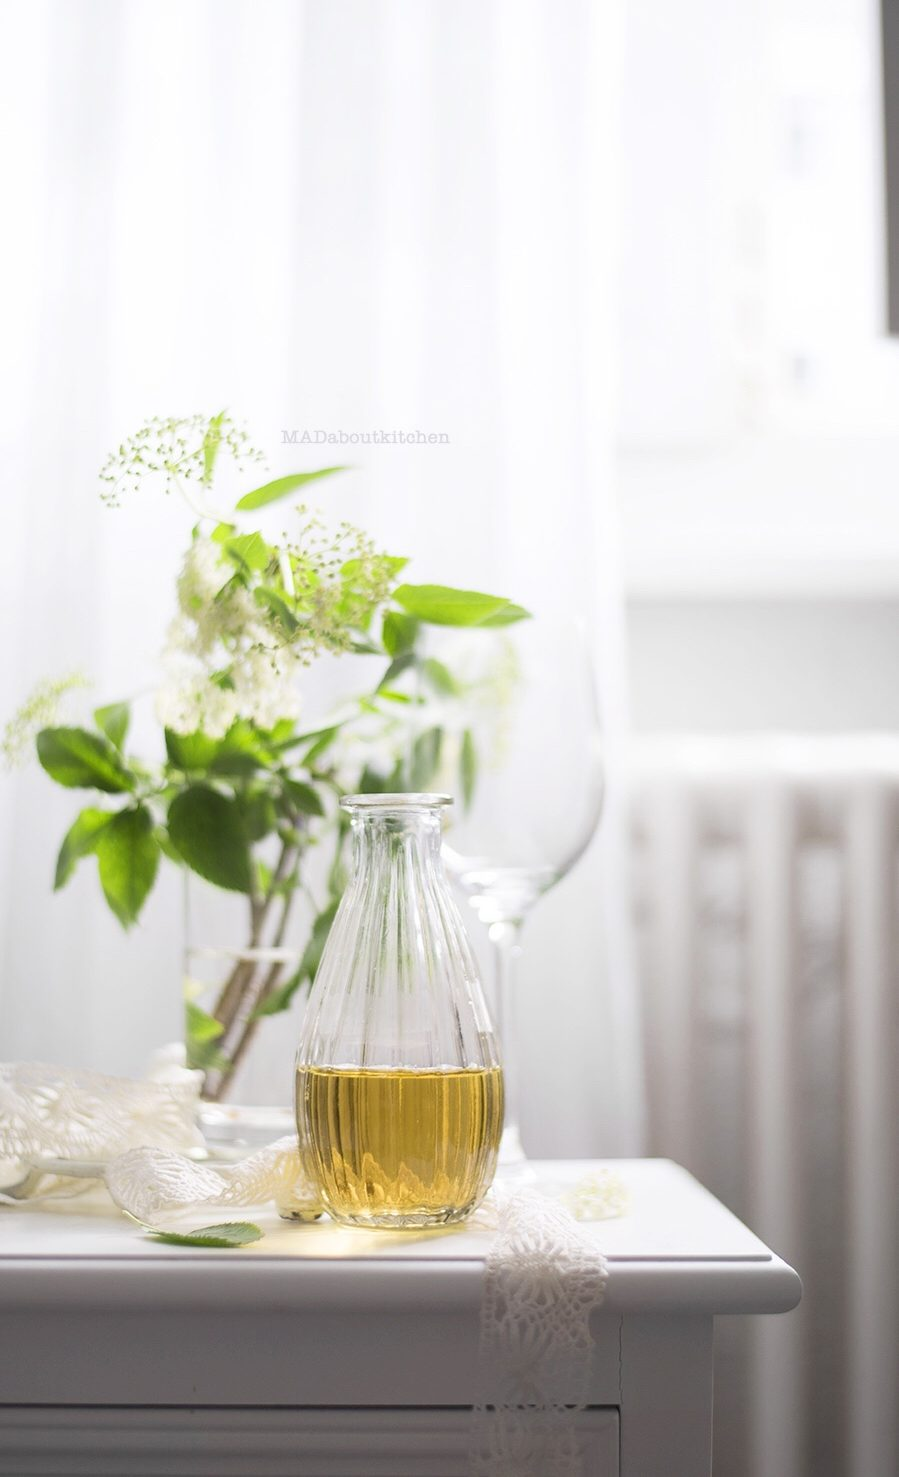 Make Homemade Elder Flower Syrup and serve this aromatic, delicate , delicious syrup with sparkling water, add to wine, top it on yogurt or fruits. Just the name Elderflower has a very exotic feel to it, don't you think? Something very royal, something very fairy tale ish.